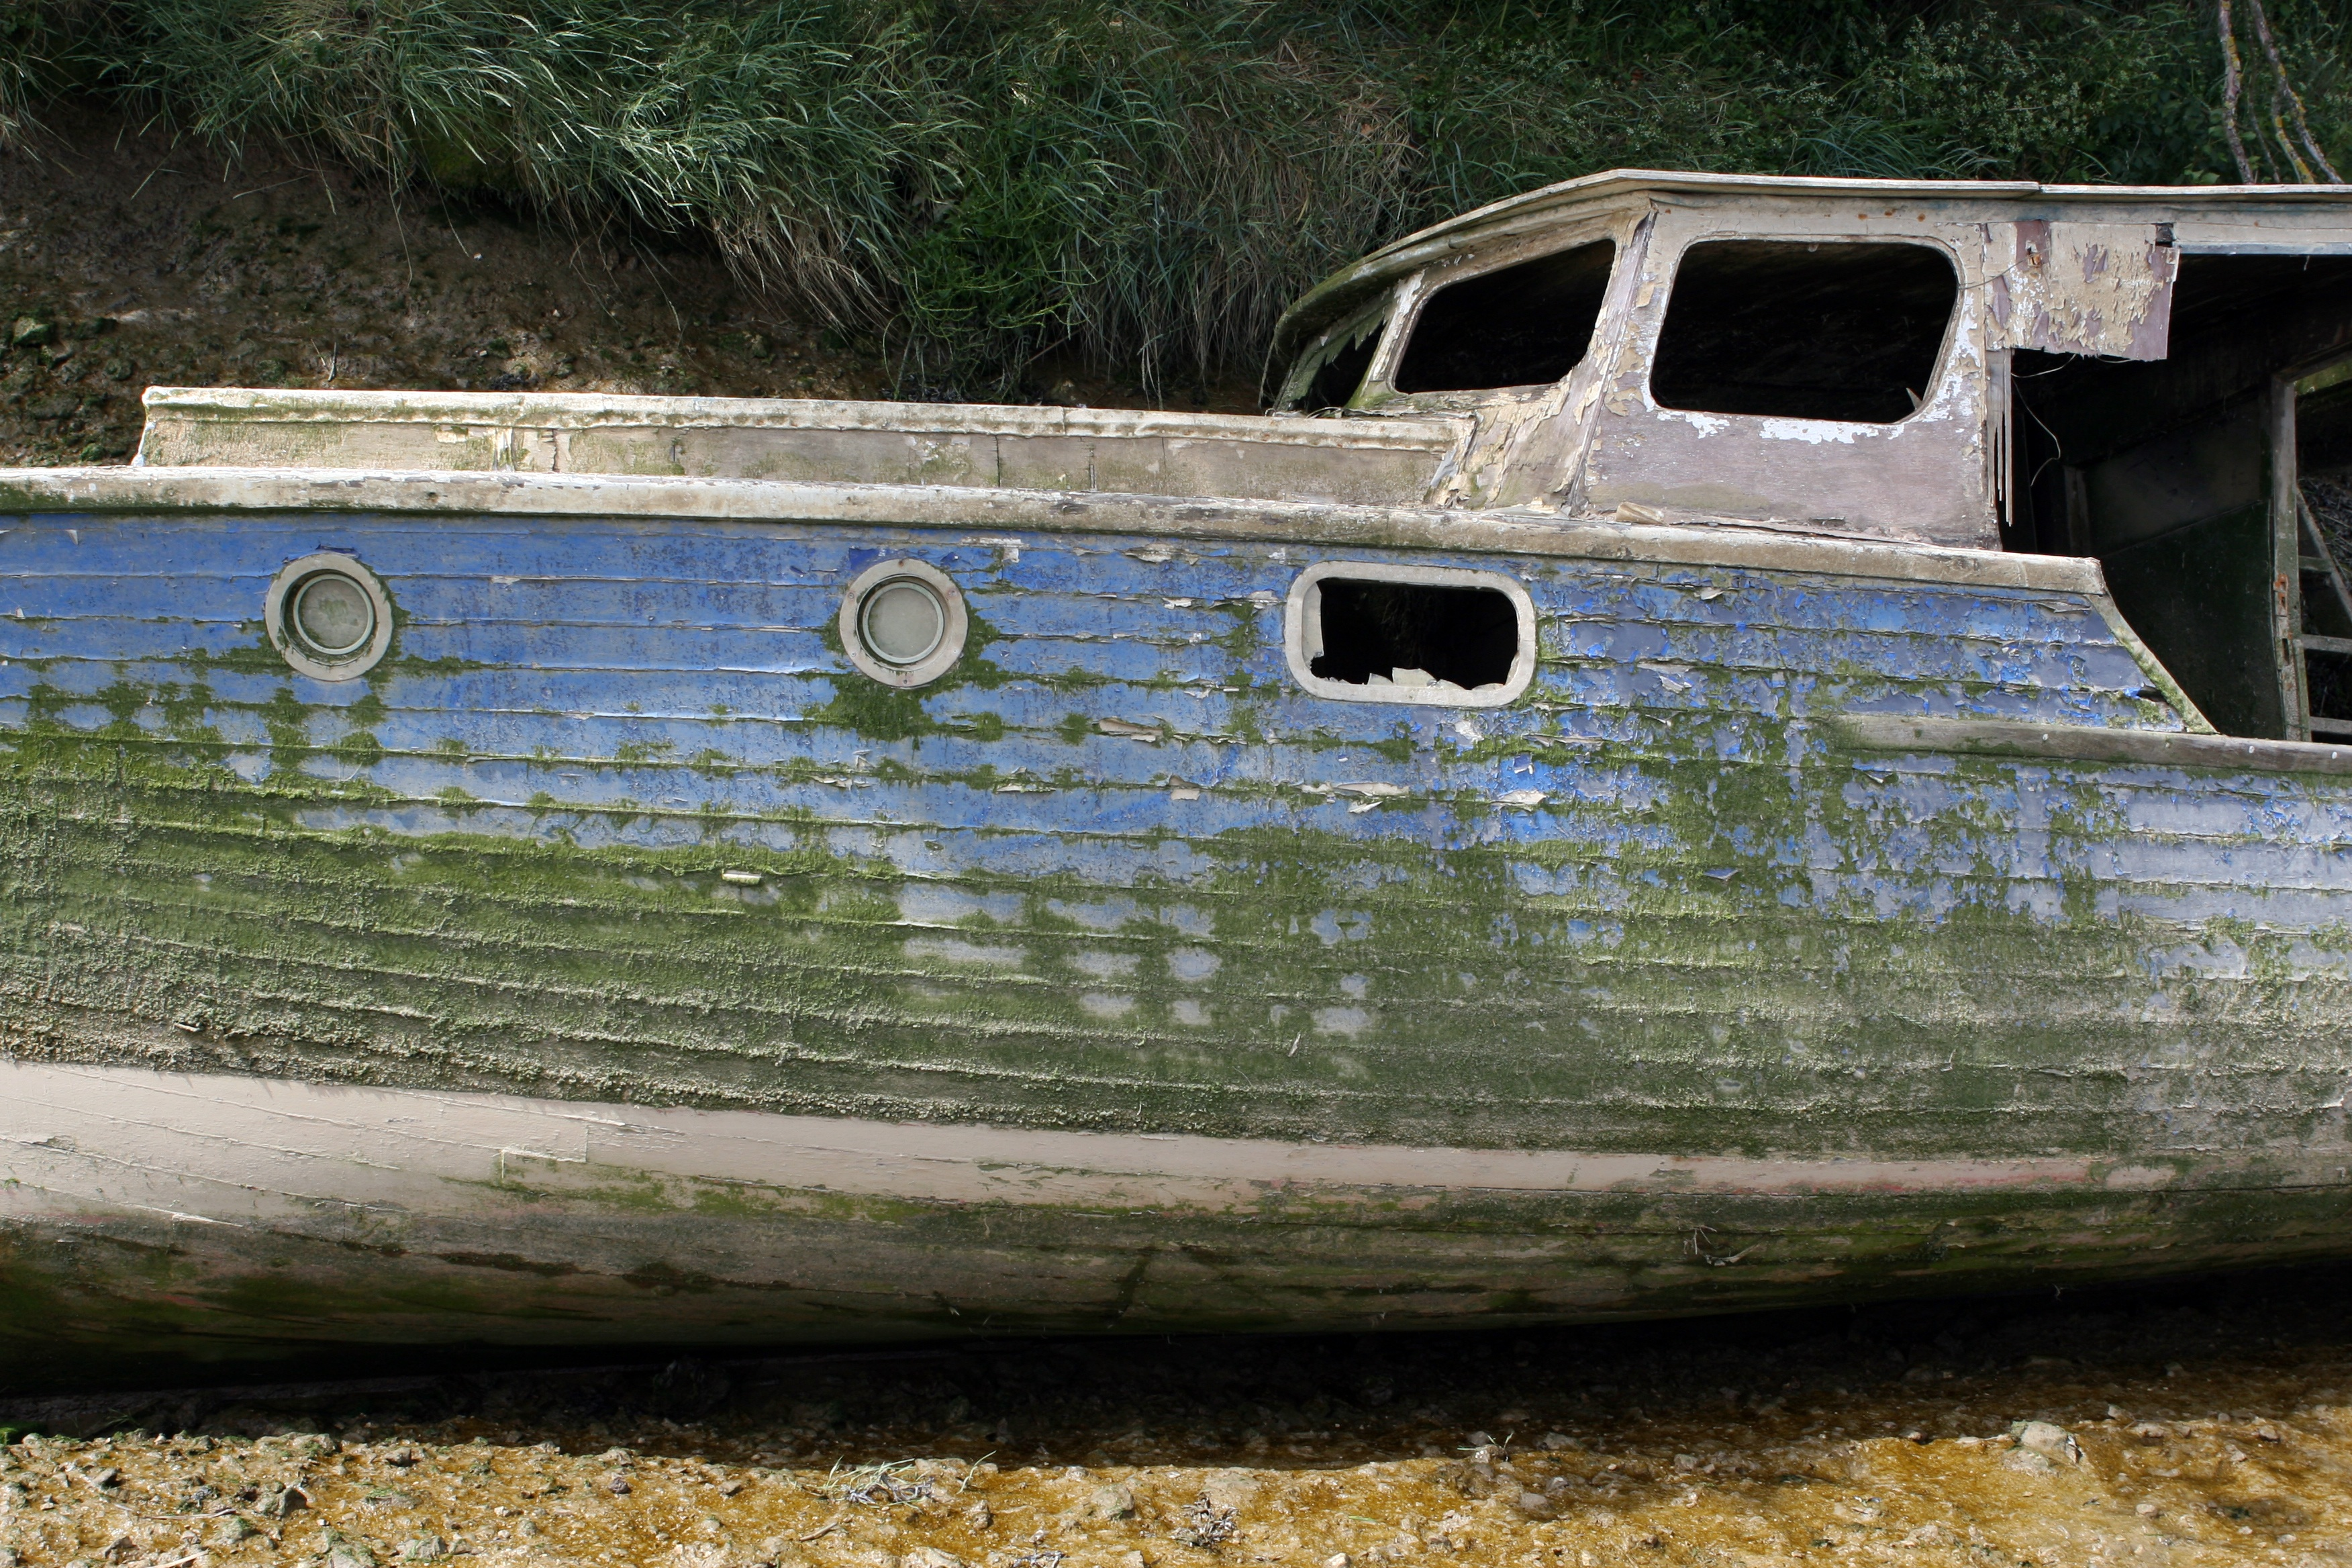 Old Boat, Wooden, Wood, Old, Boat, HQ Photo